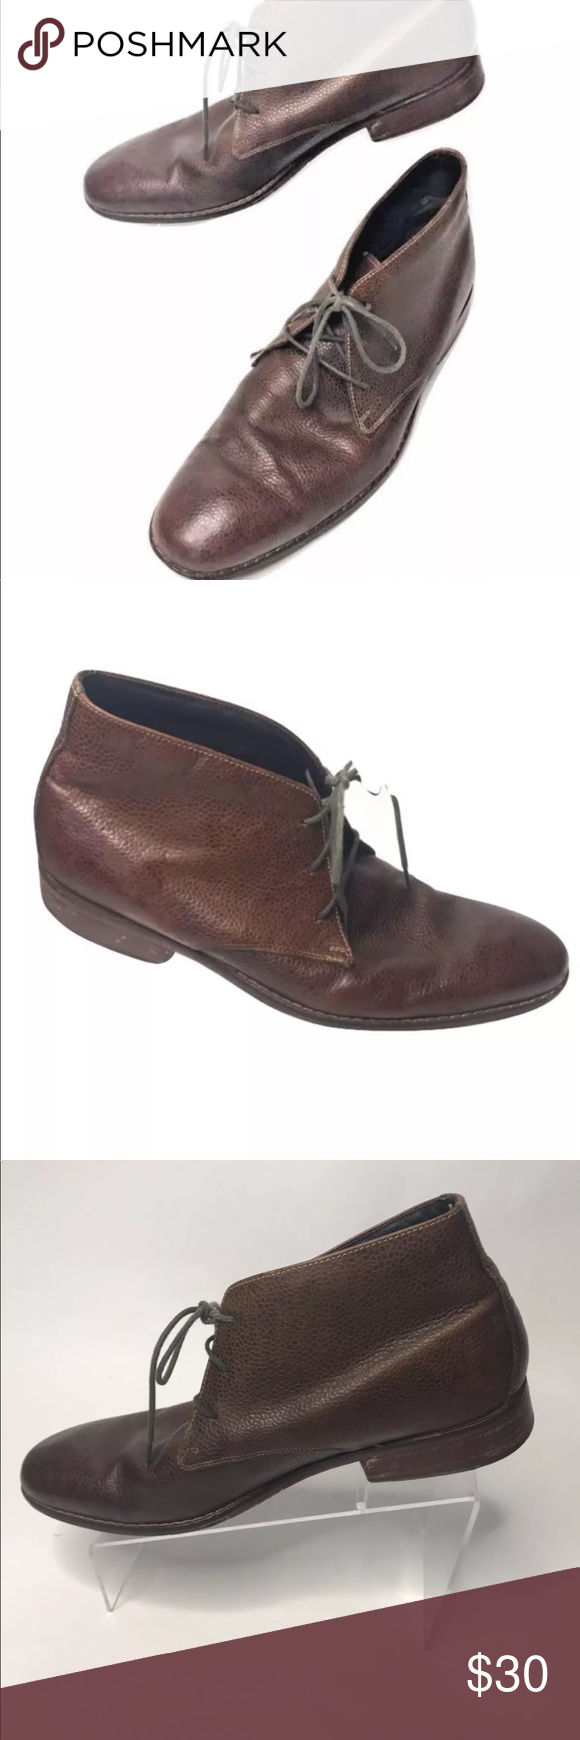 4ffdaa9b459e37 ... Ted Baker Abdon 2 Espadrille Chukka Boots in Blue for Men brand new  a7c7a  Cole Han chukka boots Pebbled leather brown laceup Cole Haan Chukka  Boots ...